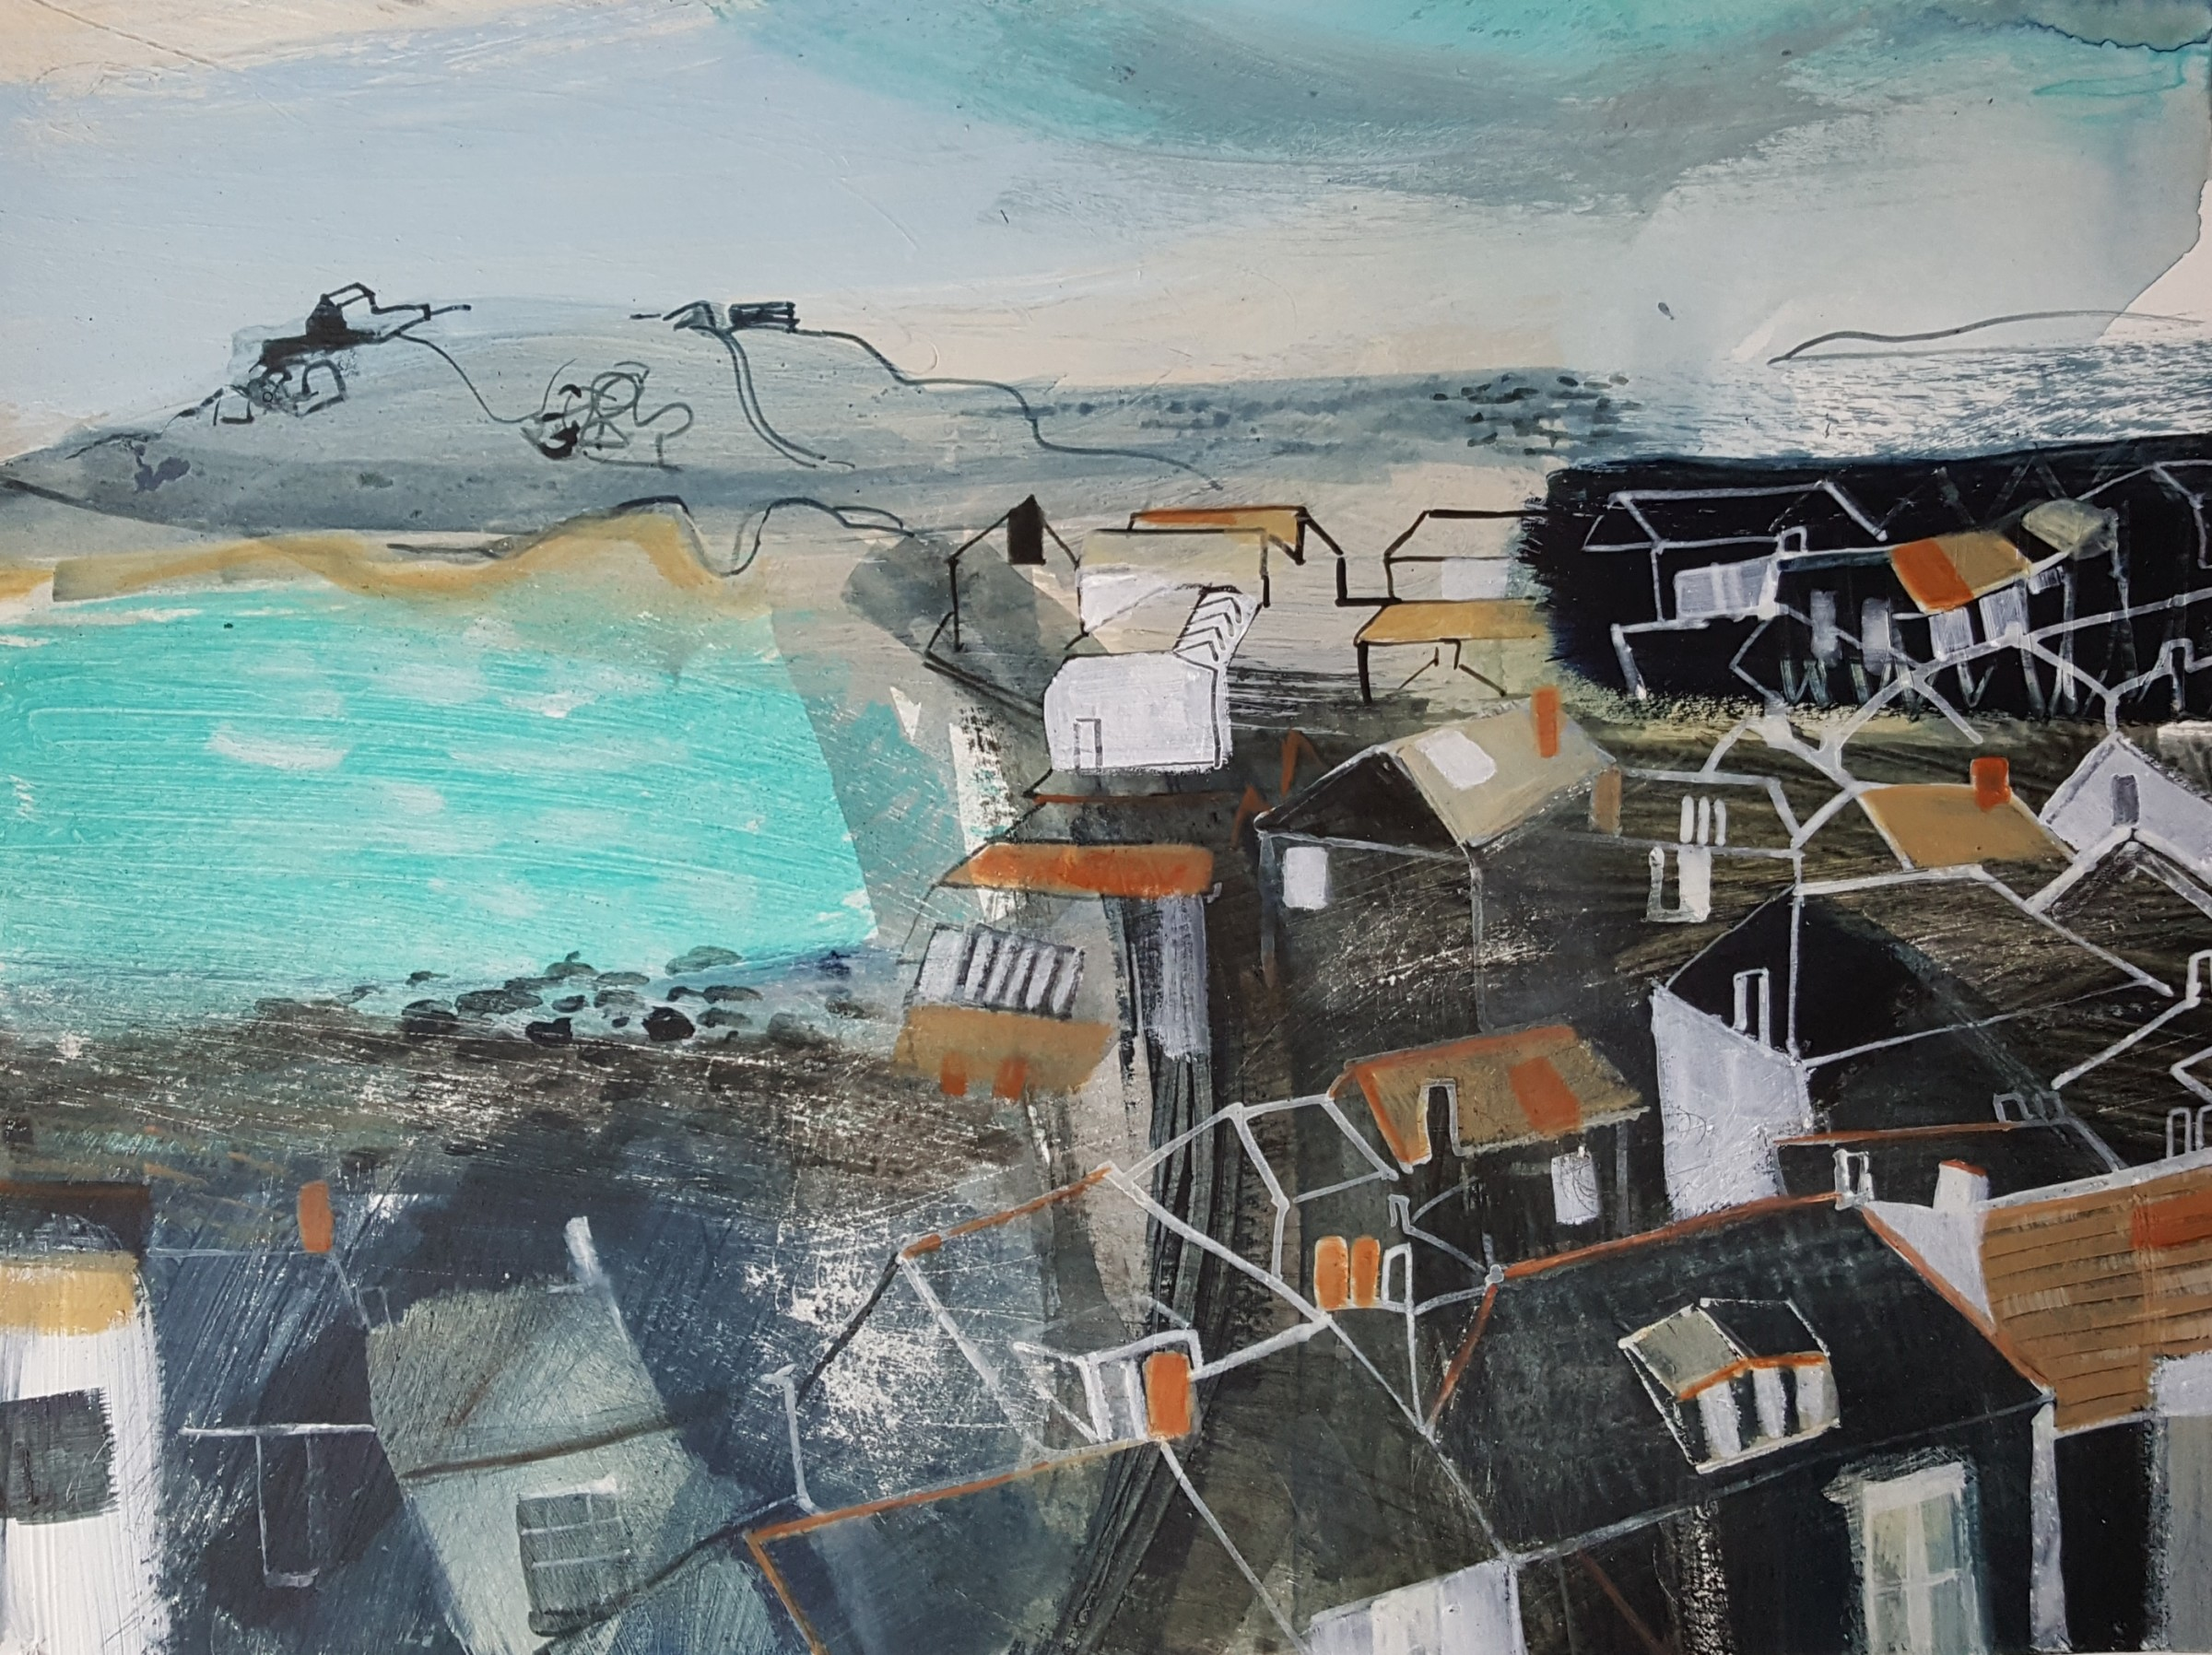 <span class=&#34;link fancybox-details-link&#34;><a href=&#34;/artists/177-jane-askey/works/5511-jane-askey-st-ives-rooftops-2018/&#34;>View Detail Page</a></span><div class=&#34;artist&#34;><strong>Jane Askey</strong></div> <div class=&#34;title&#34;><em>St Ives Rooftops</em>, 2018</div> <div class=&#34;signed_and_dated&#34;>signed</div> <div class=&#34;medium&#34;>mixed media on paper</div> <div class=&#34;dimensions&#34;>38 x 45 cm<br /> 15 x 17 3/4 inches</div><div class=&#34;copyright_line&#34;>OwnArt: £ 40 x 10 Months, 0% APR</div>